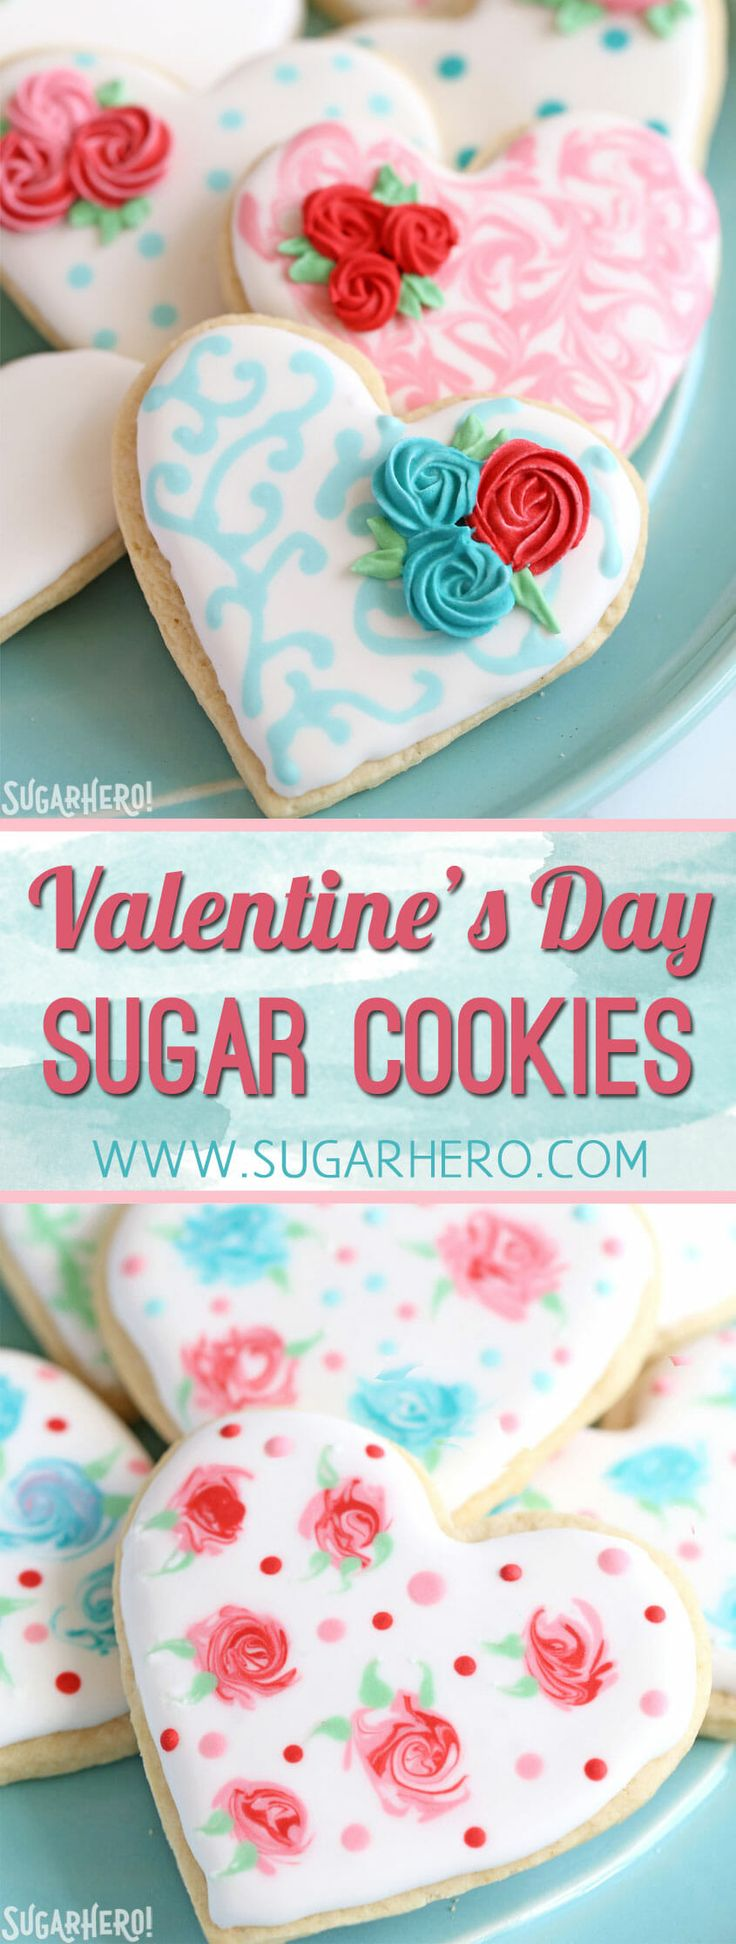 These classic sugar cookies are decorated with royal icing in a variety of beautiful Valentine's Day designs. From SugarHero.com